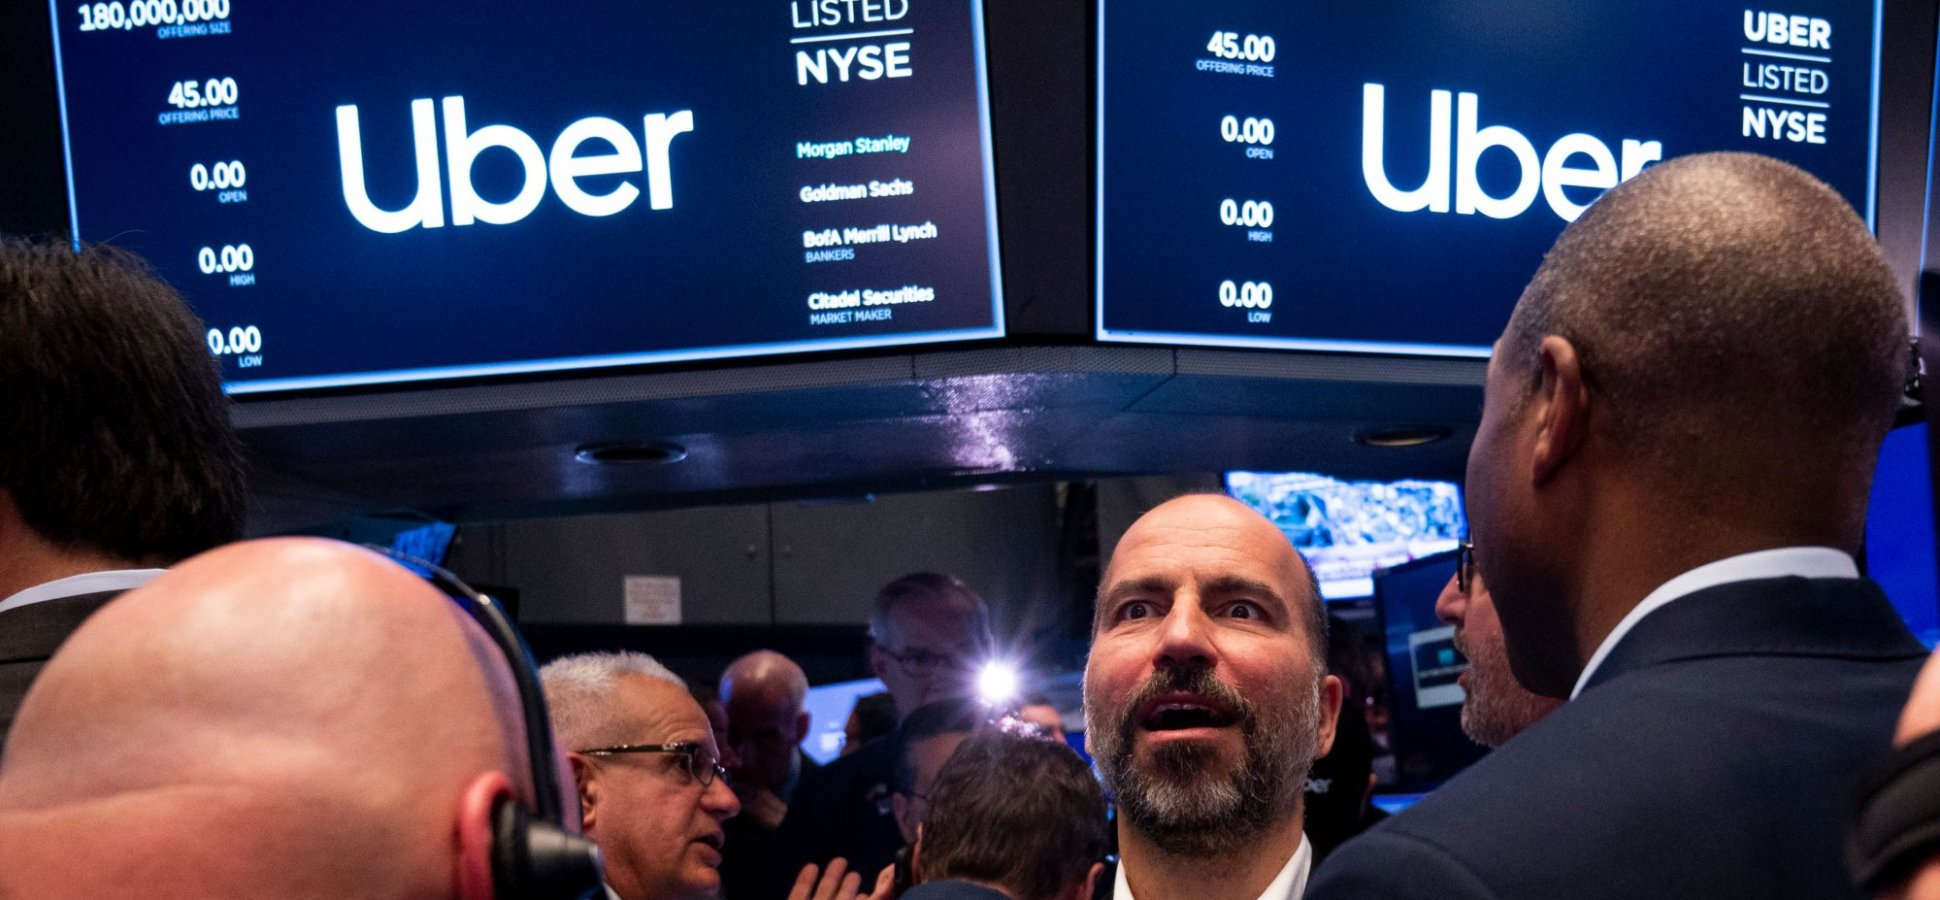 Peloton Becomes the Latest IPO After Uber and Lyft to See Shares Immediately Sink